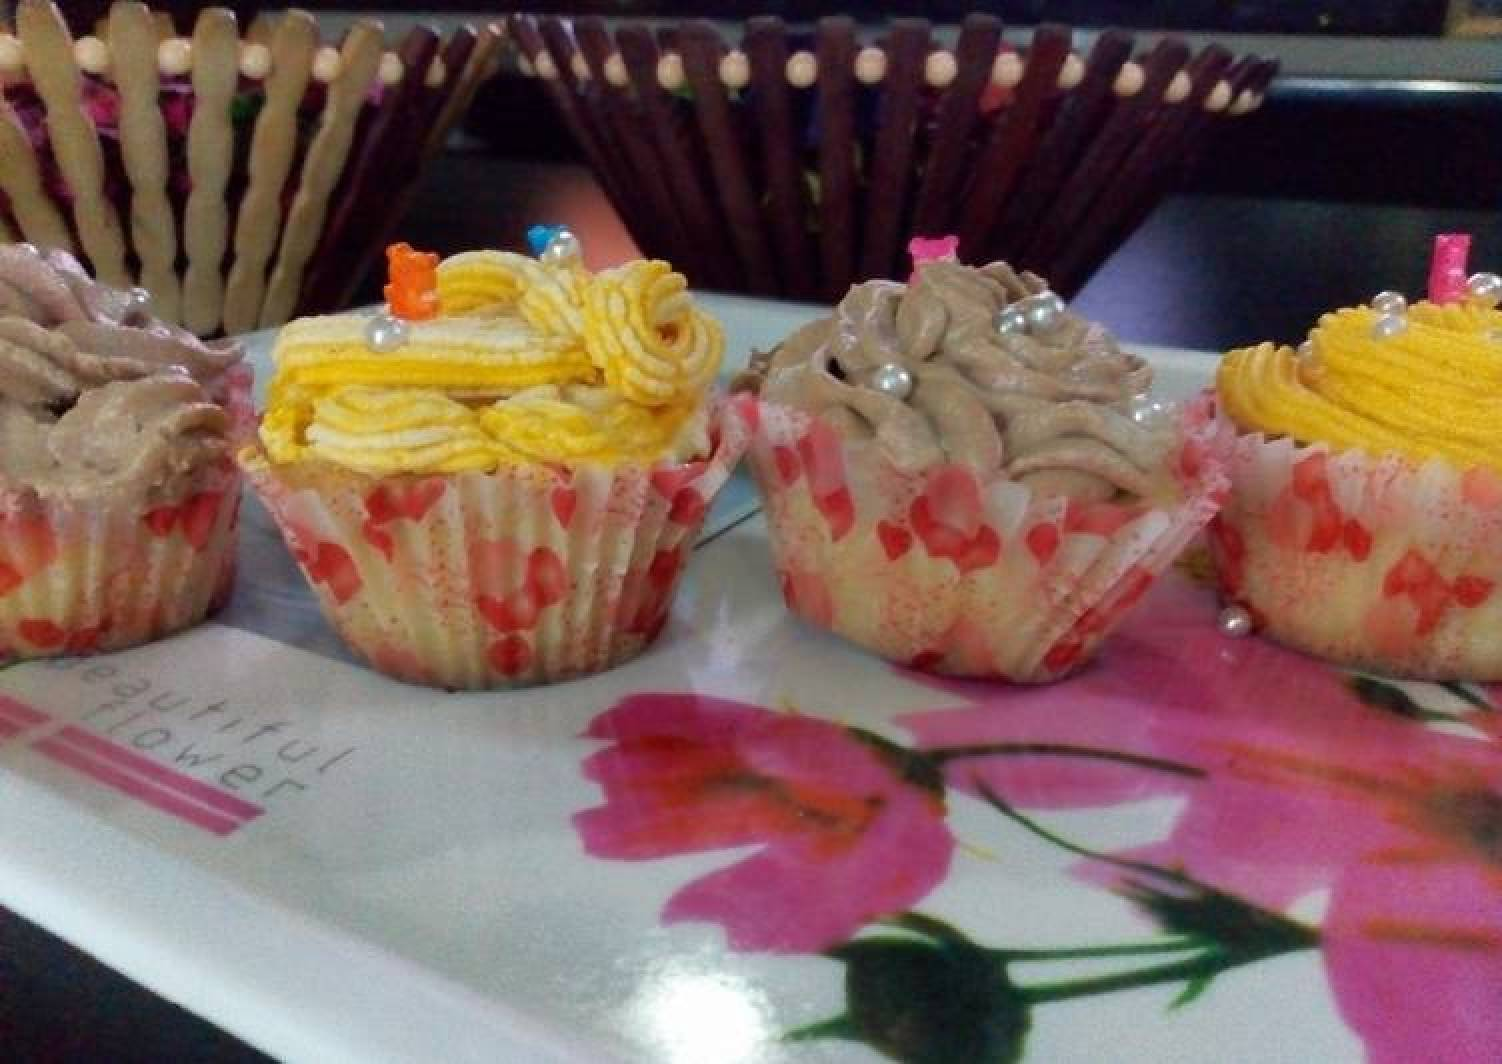 Cup cake frosting